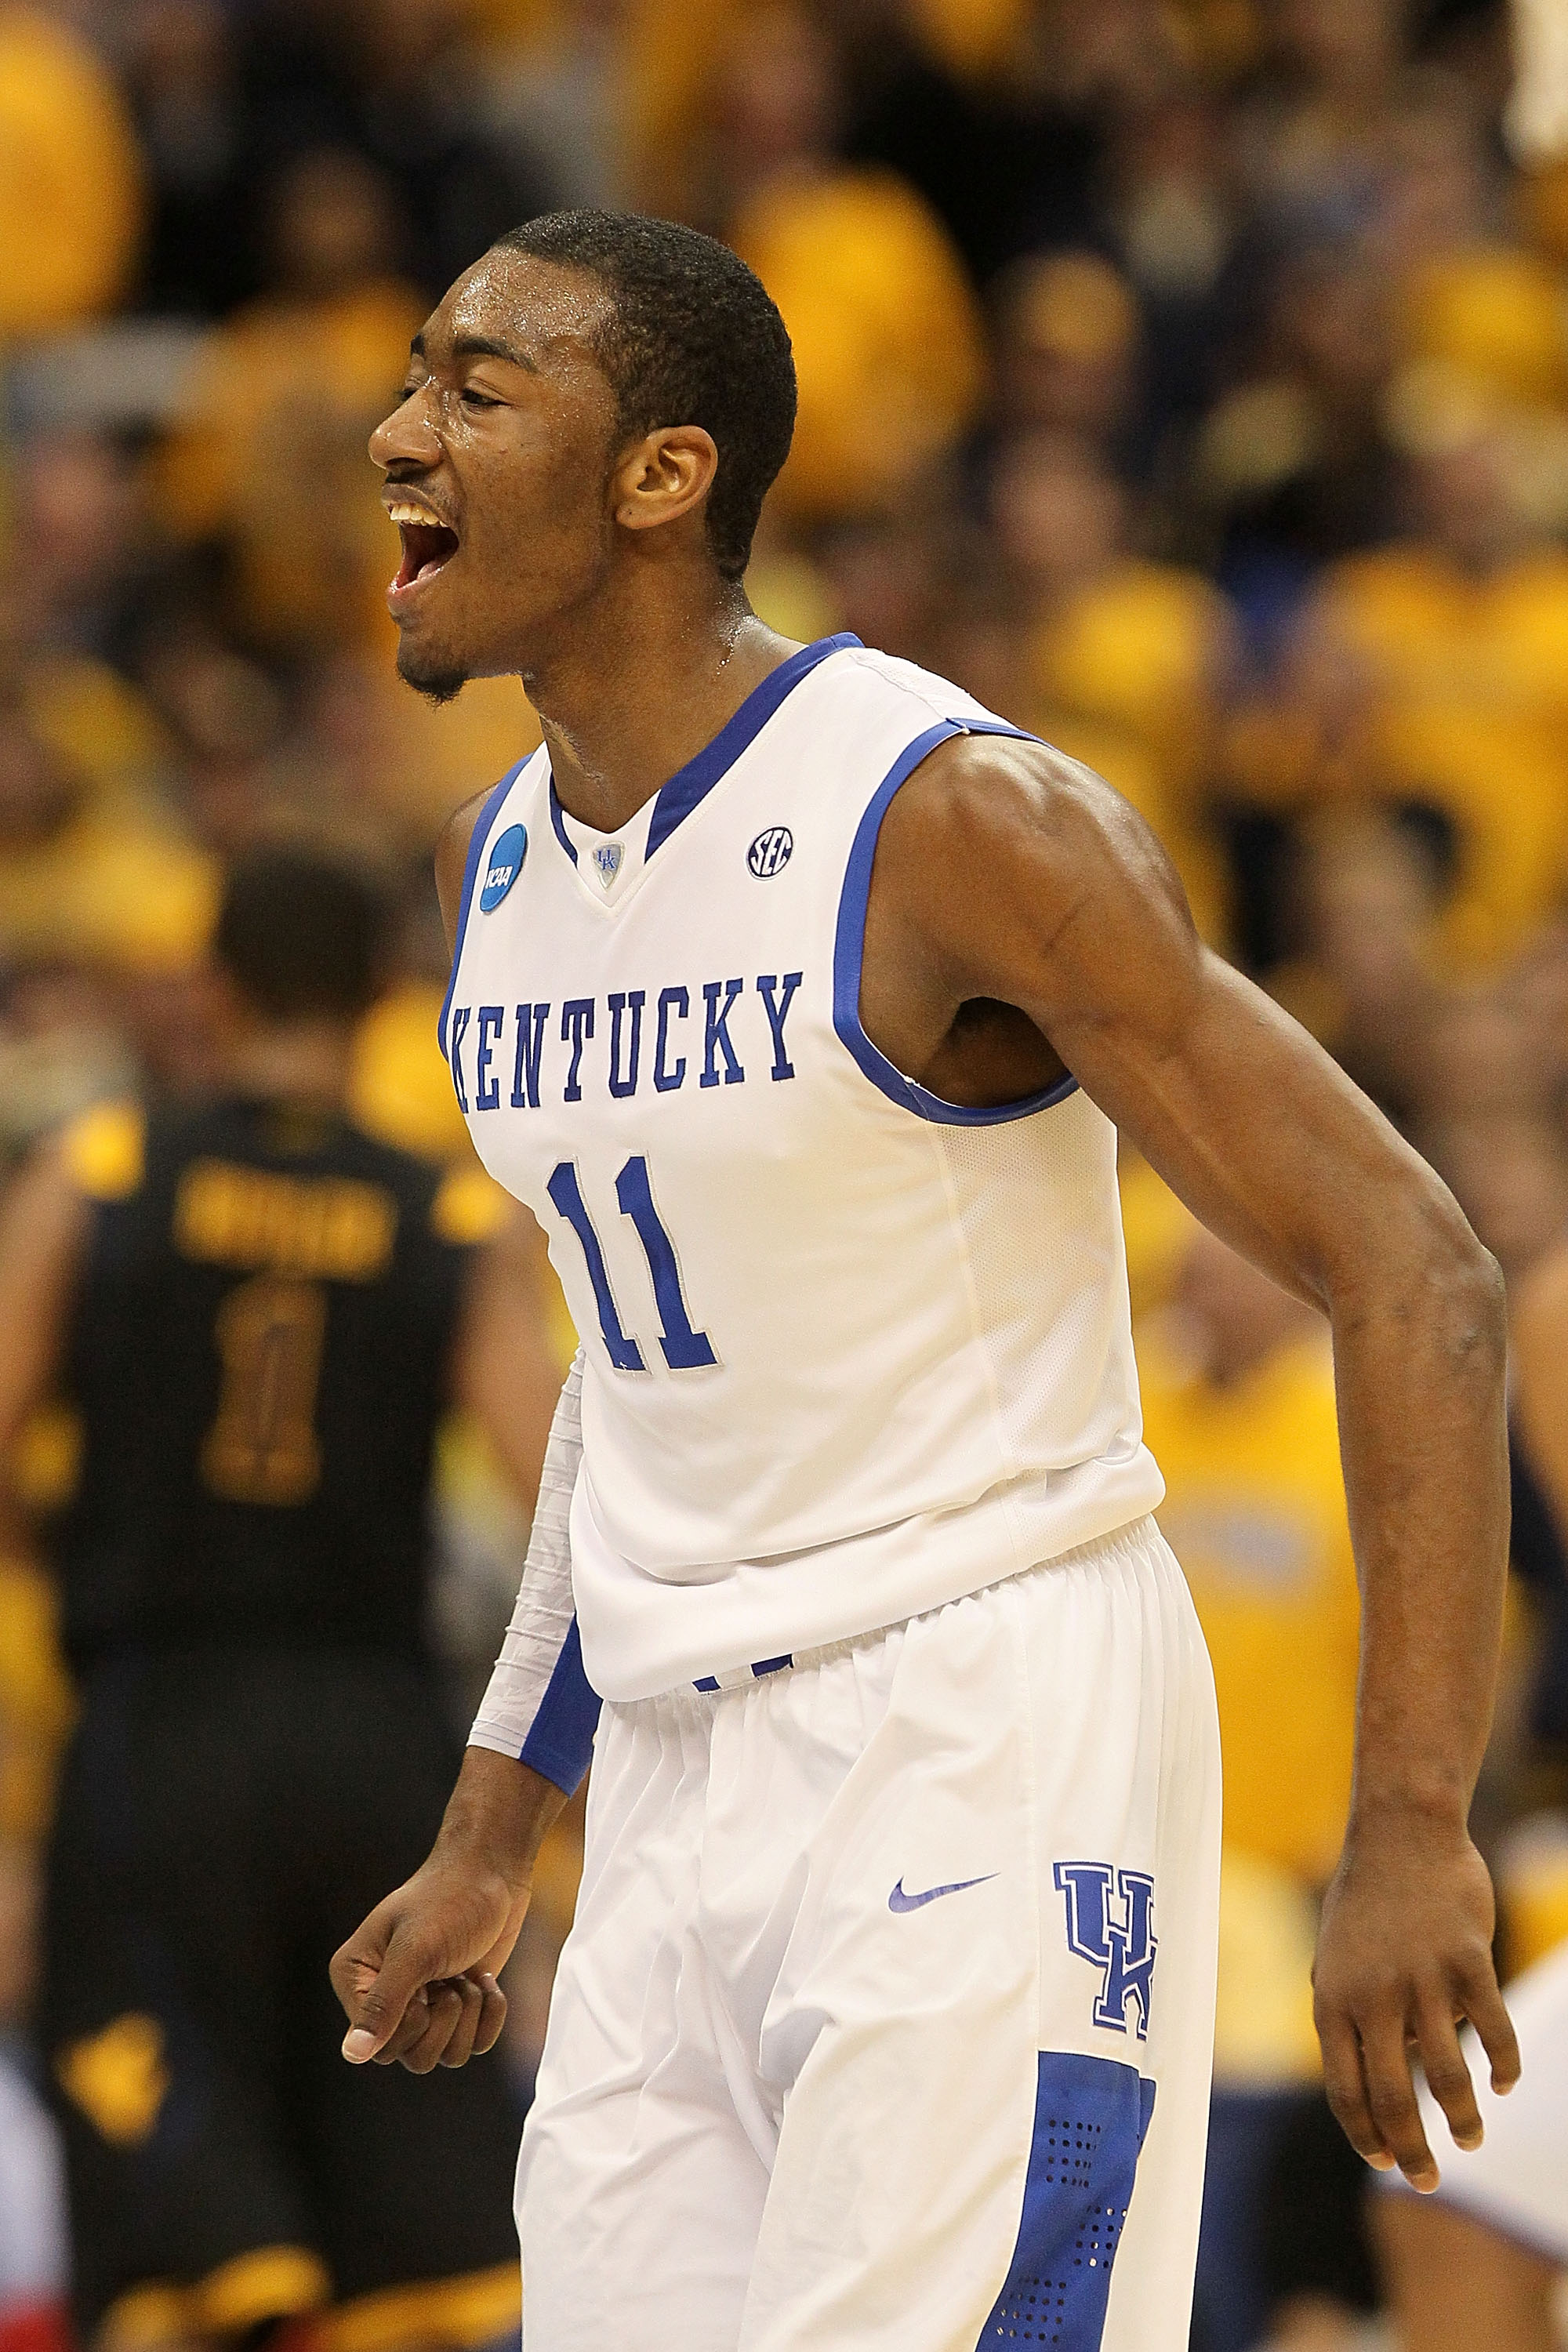 SYRACUSE, NY - MARCH 27:  John Wall #11 of the Kentucky Wildcats reacts against the West Virginia Mountaineers during the east regional final of the 2010 NCAA men's basketball tournament at the Carrier Dome on March 27, 2010 in Syracuse, New York.  (Photo